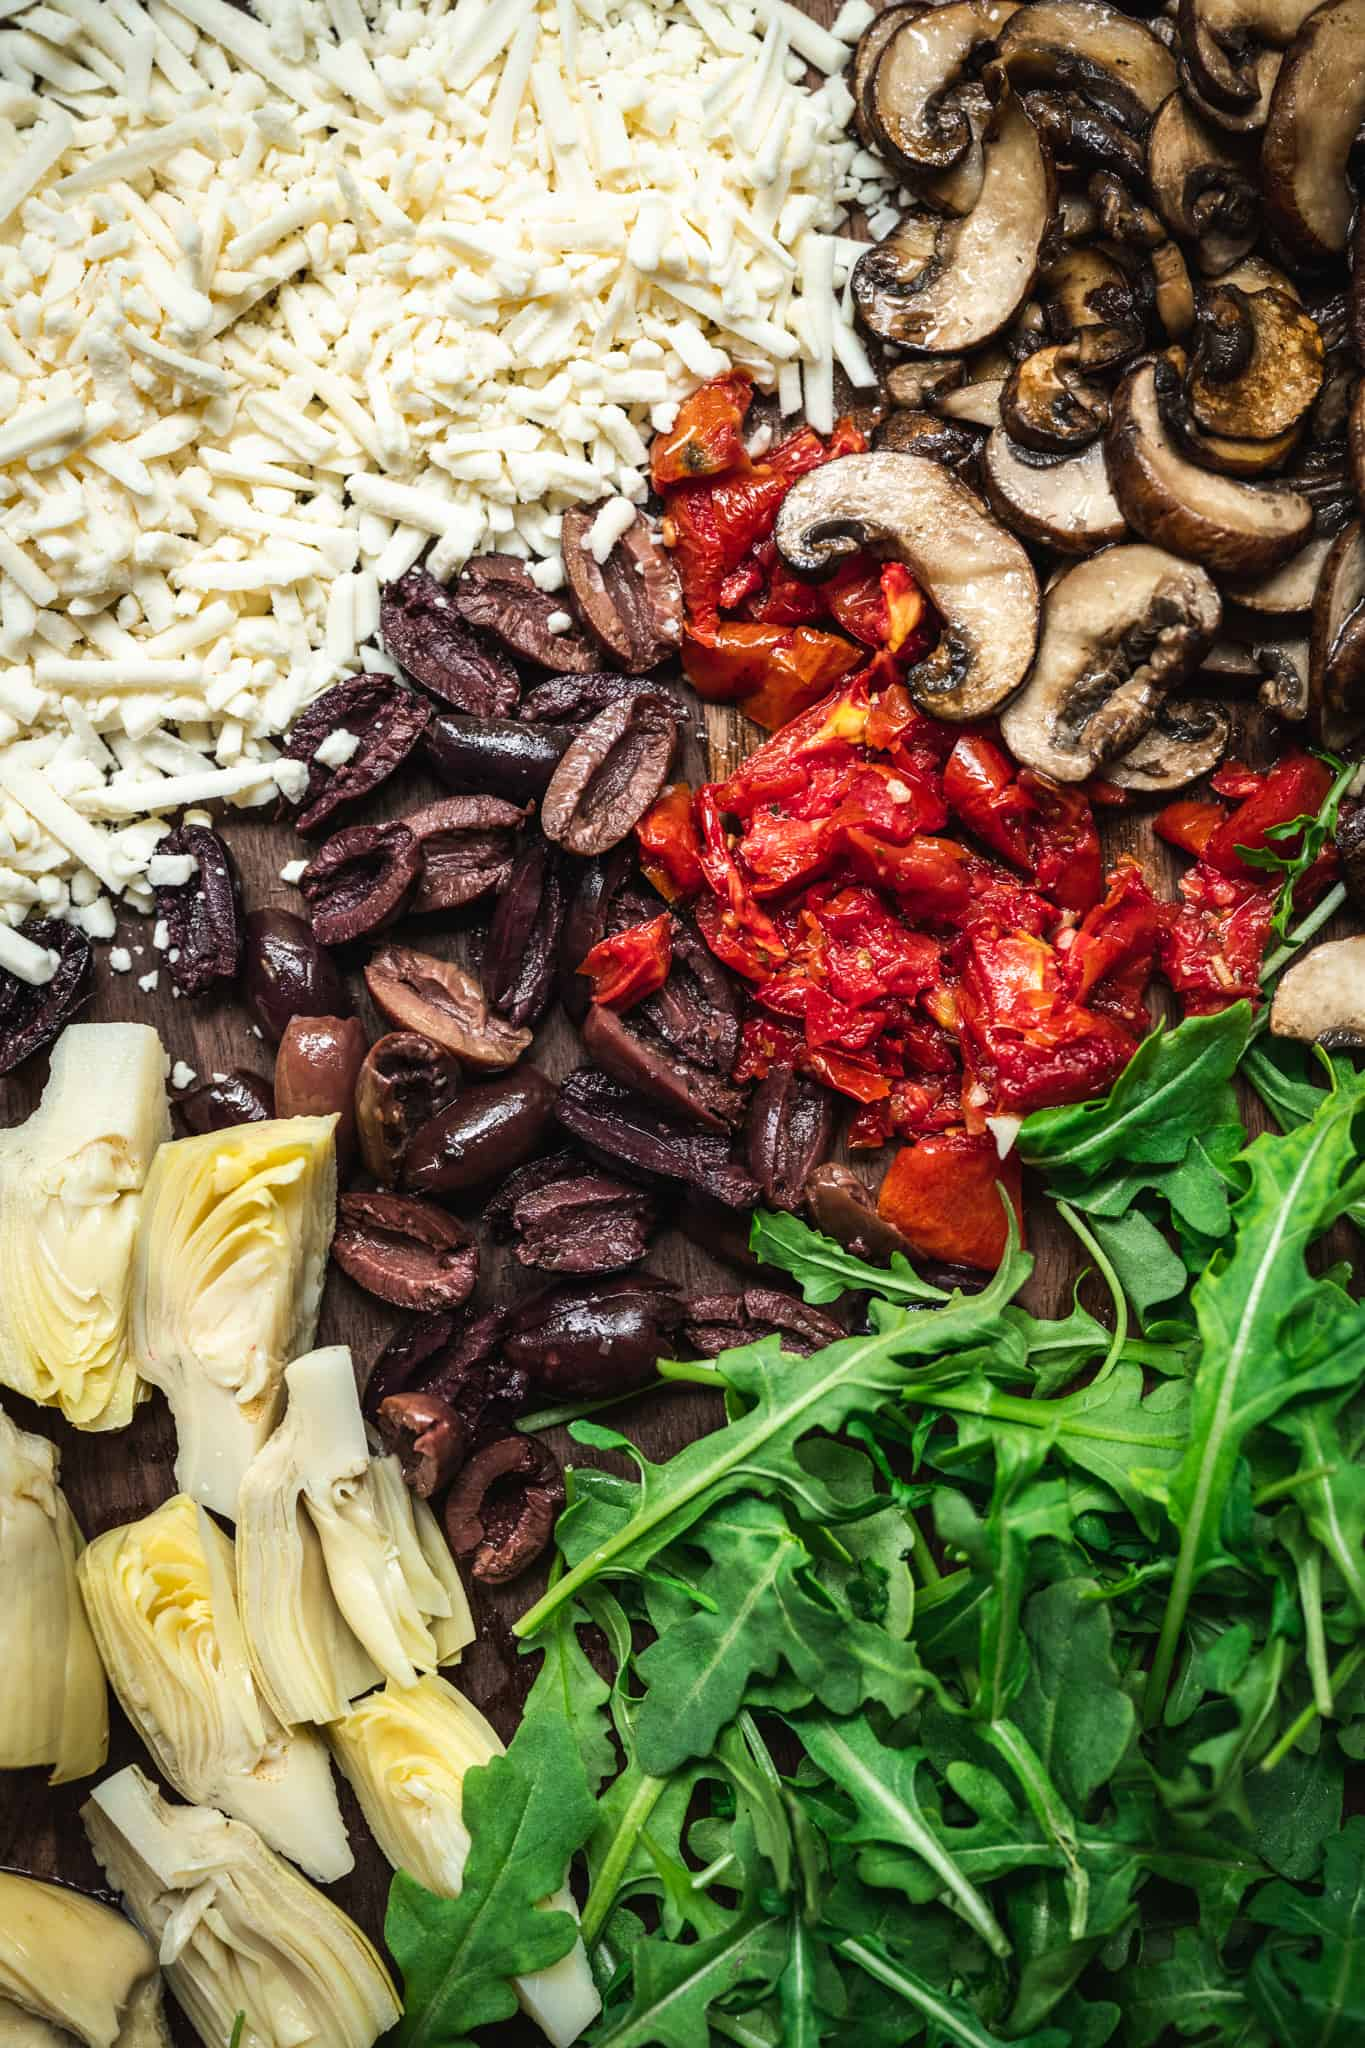 Overhead of vegan cheese, mushrooms, olives, sun-dried tomatoes, artichokes and arugula